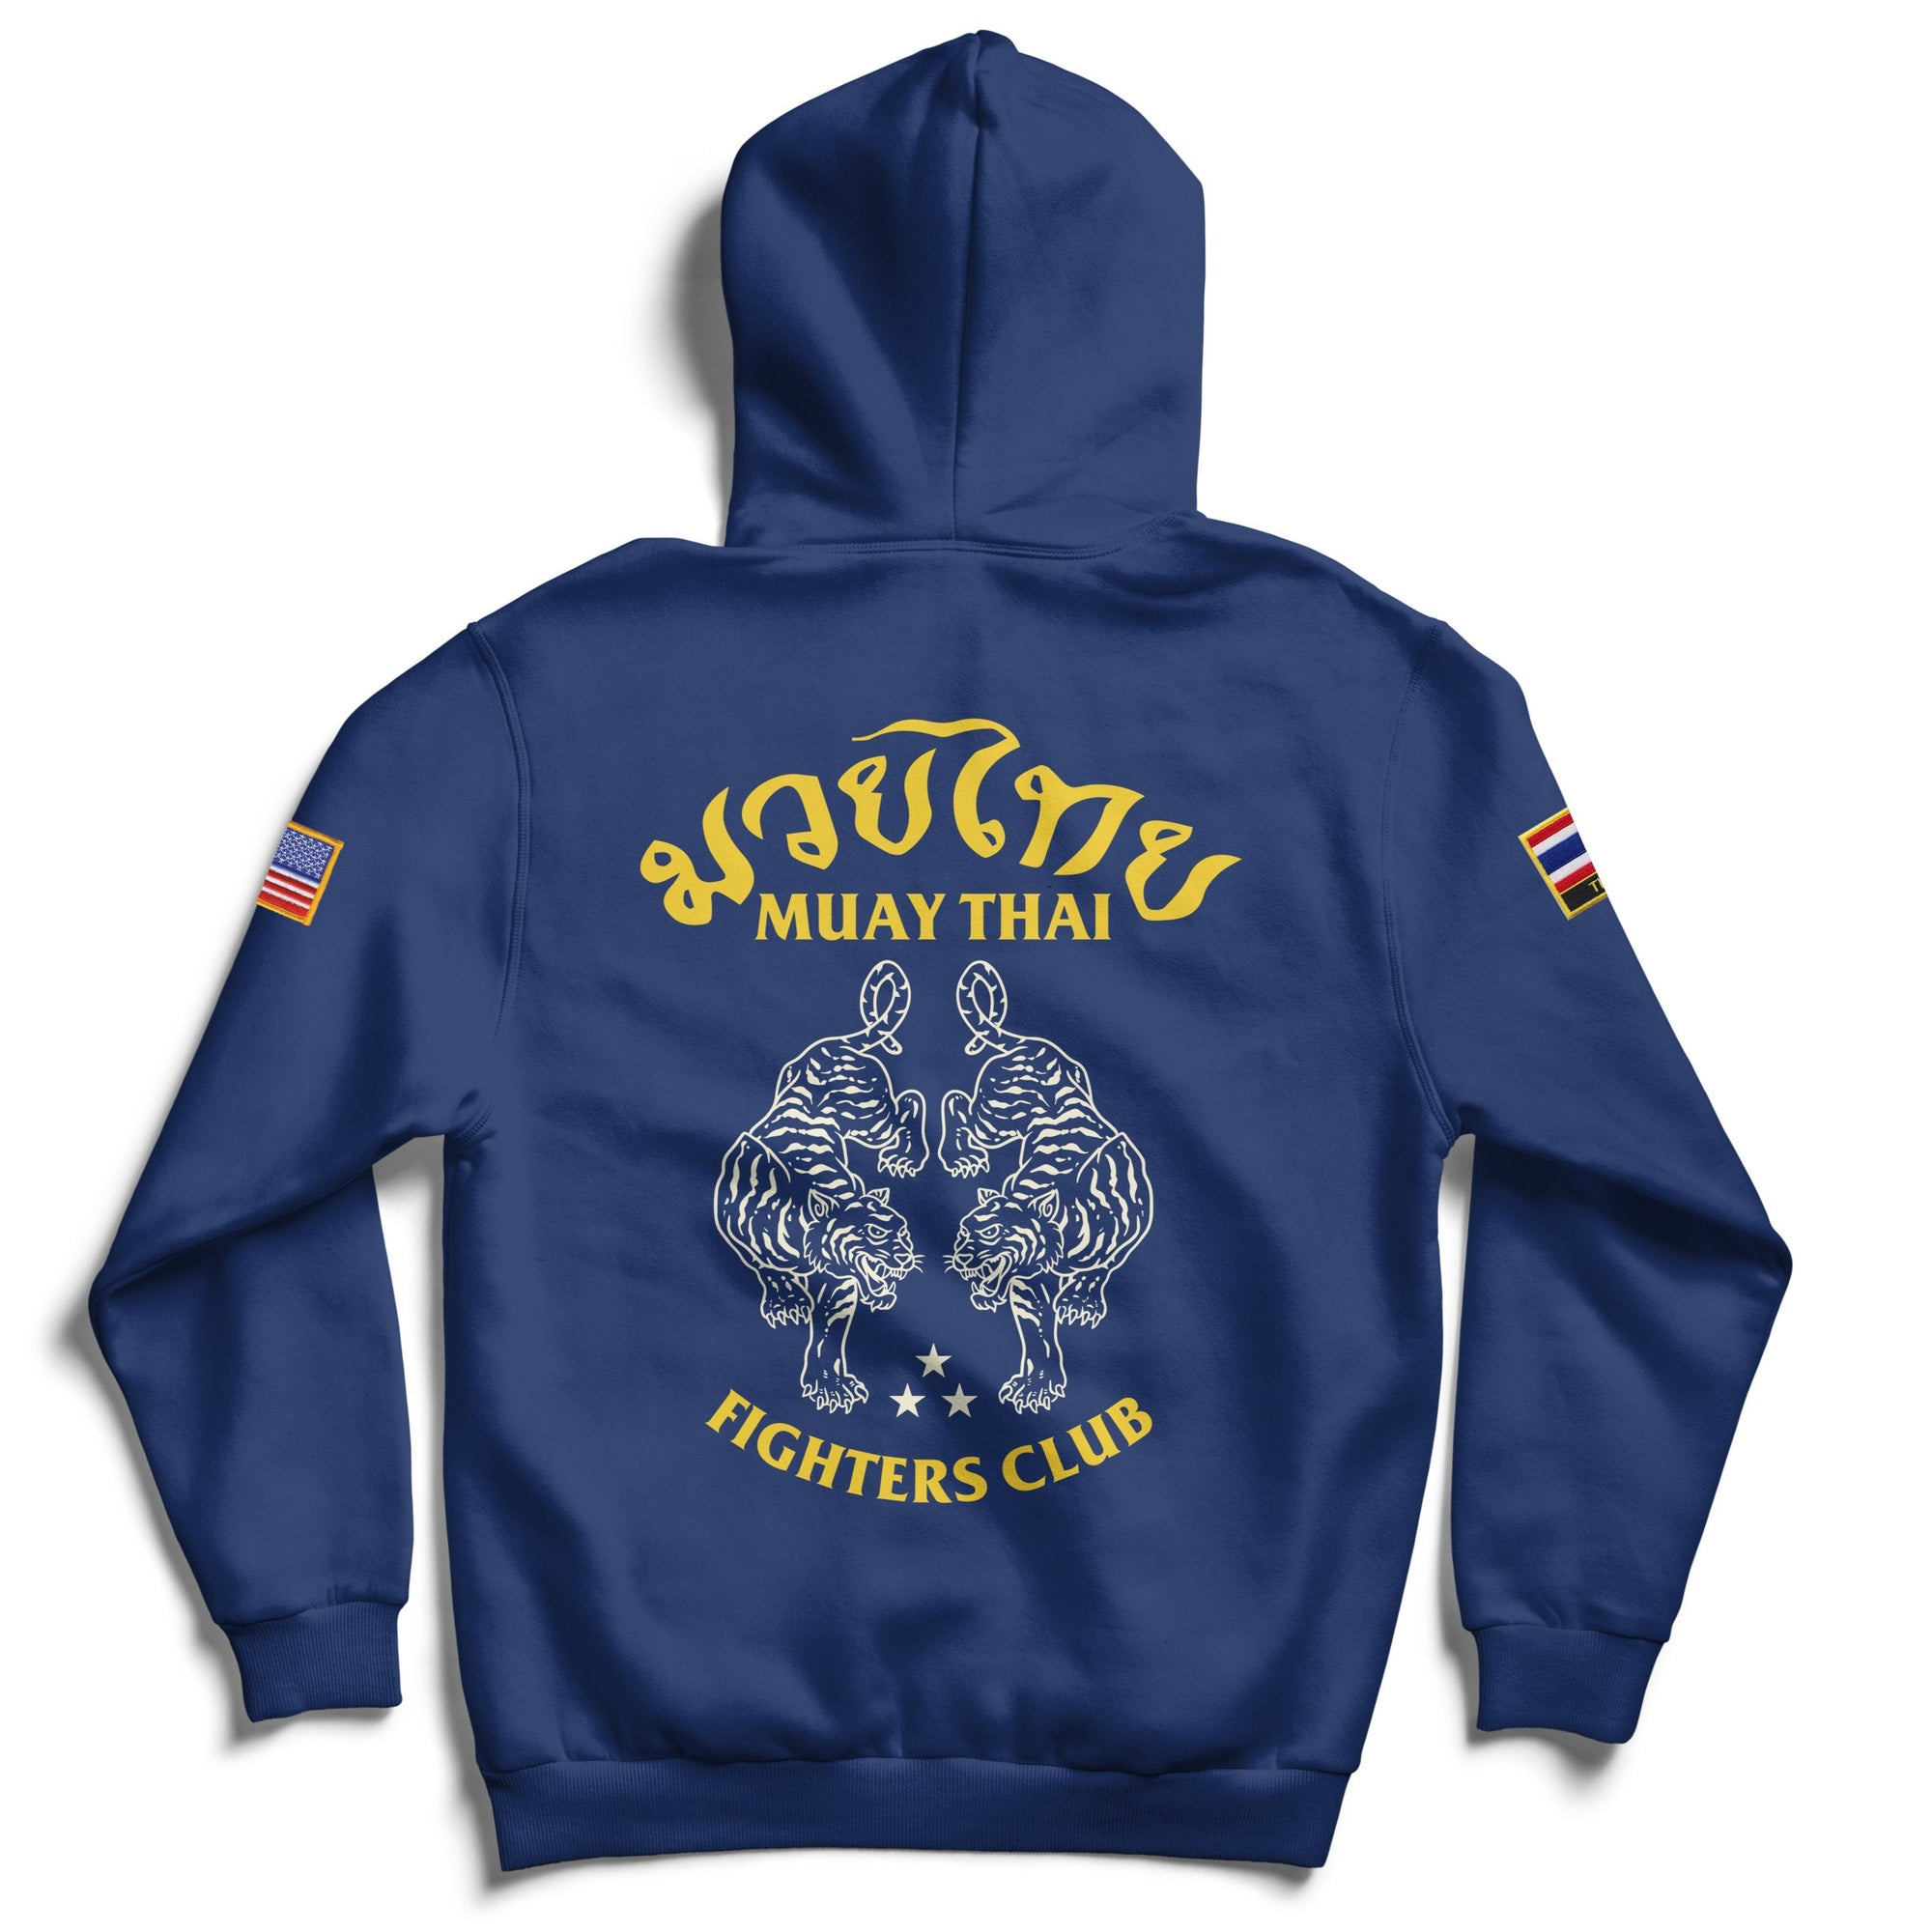 MUAY THAI TWIN TIGER ZIP UP - BLUE